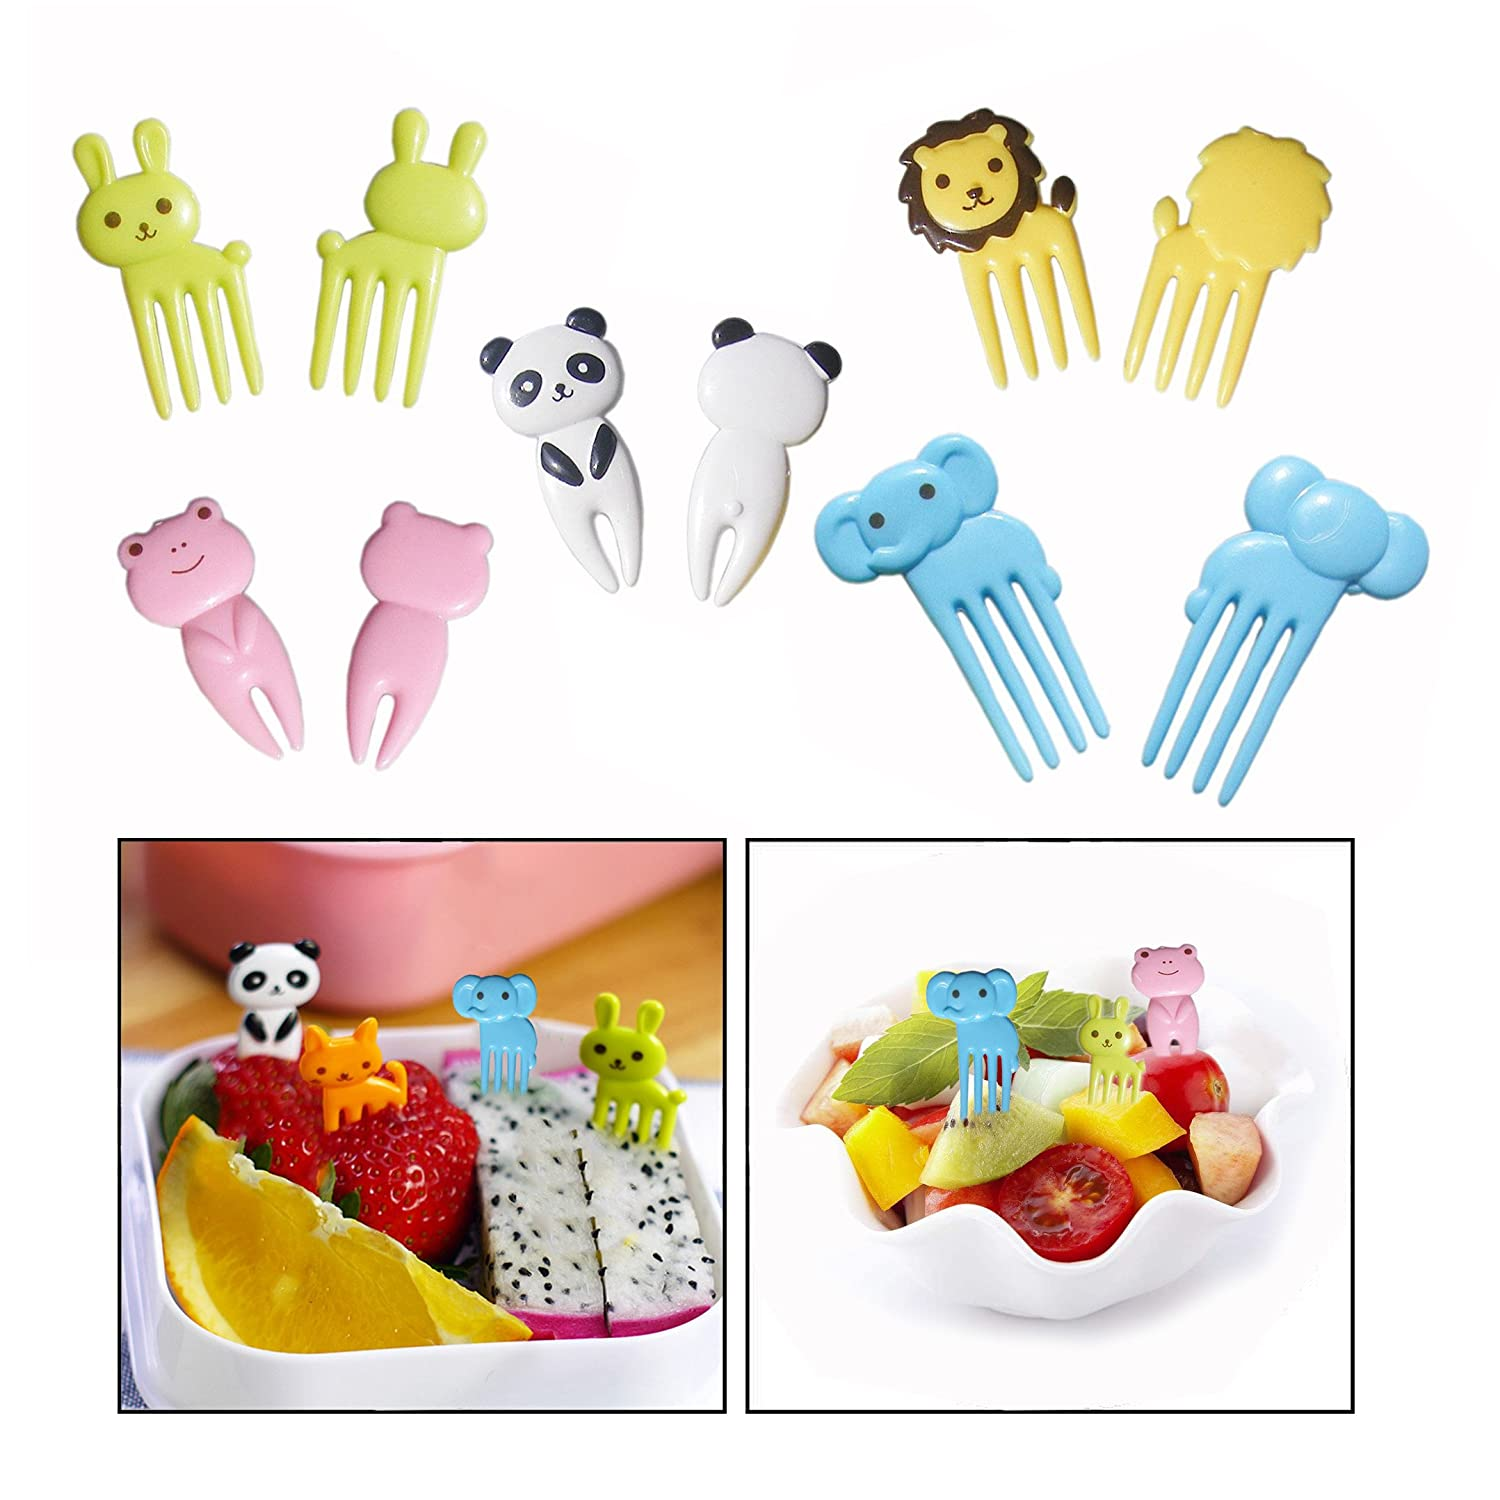 OFKPO 10Pcs Mini Lunch Fork, Animal Cartoon Child Fruit Fork, Animal Mini Cartoon Toothpick for Your Kids(Specifications: about 60MM)